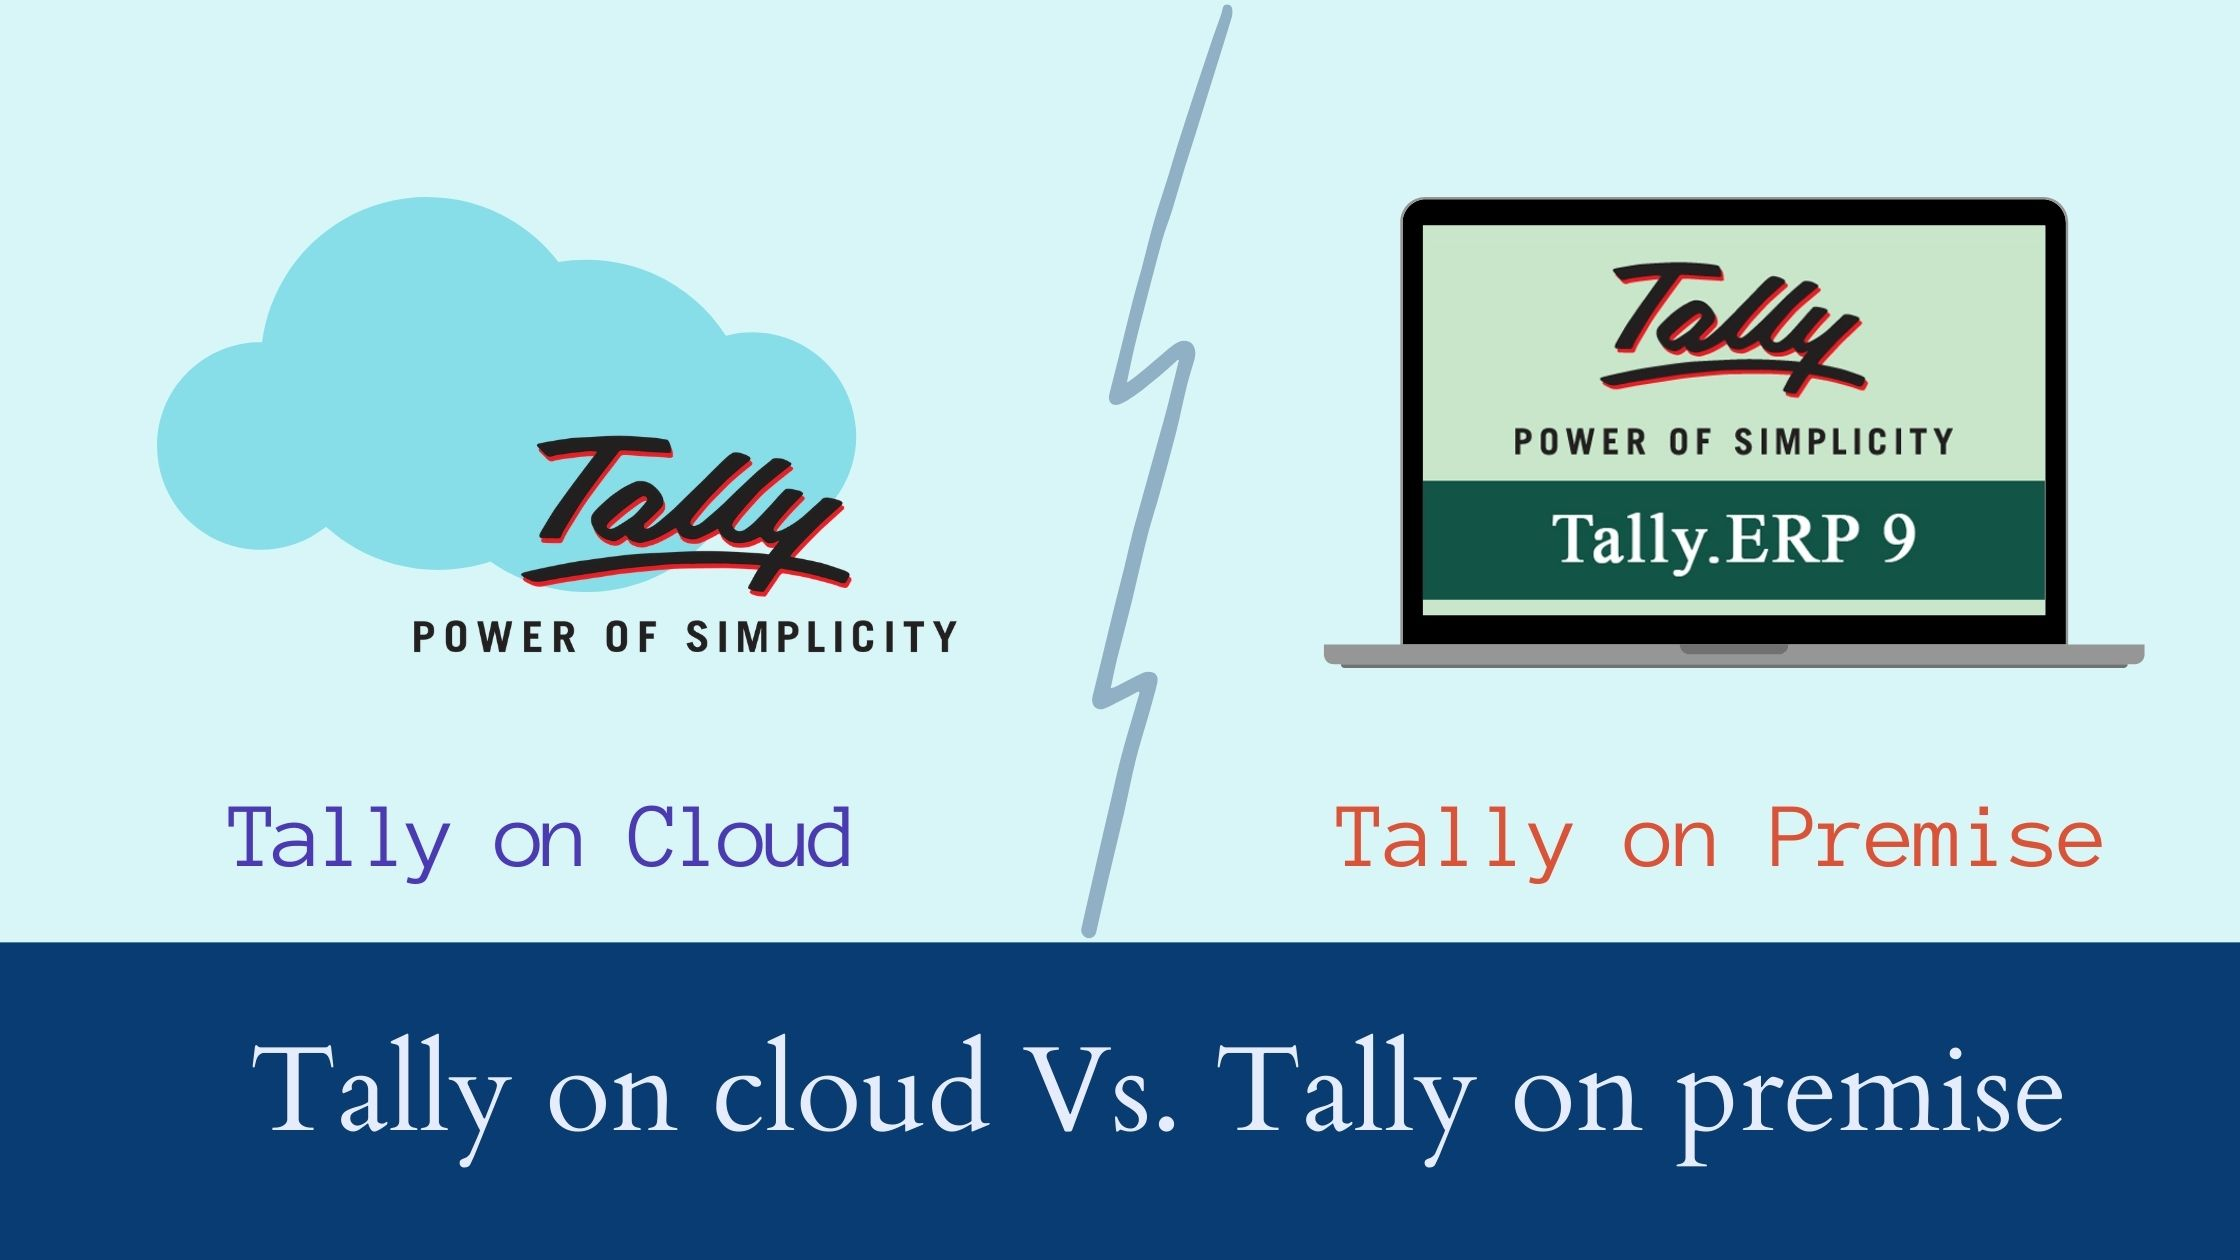 Tally on cloud and Tally on premise difference